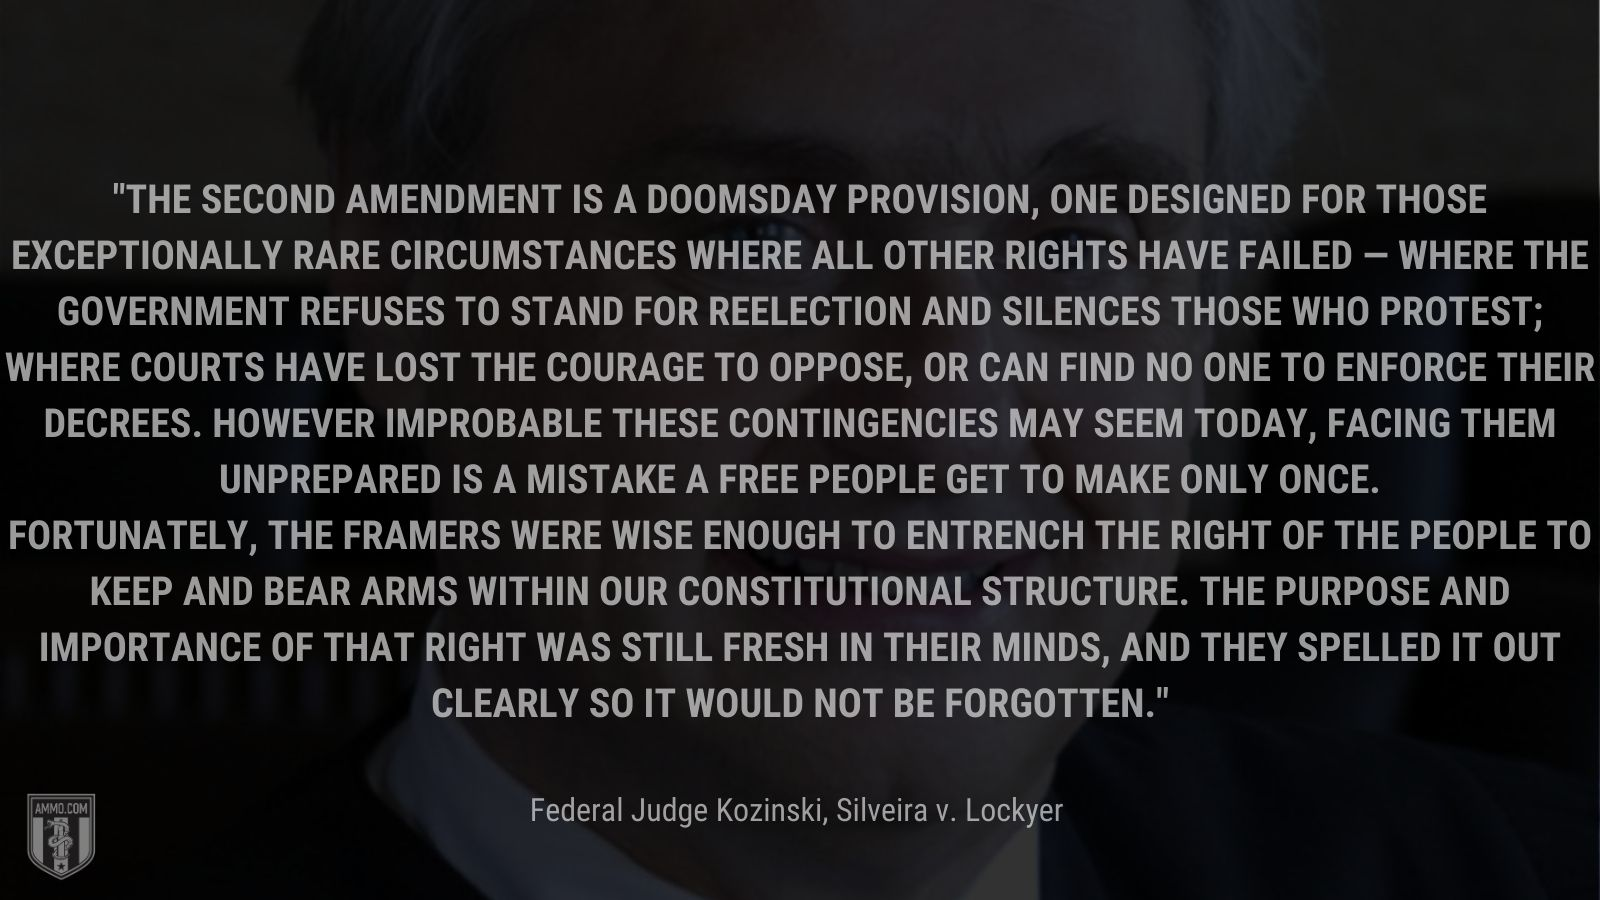 """""""The Second Amendment is a doomsday provision, one designed for those exceptionally rare circumstances where all other rights have failed — where the government refuses to stand for reelection and silences those who protest; where courts have lost the courage to oppose, or can find no one to enforce their decrees. However improbable these contingencies may seem today, facing them unprepared is a mistake a free people get to make only once. Fortunately, the Framers were wise enough to entrench the right of the people to keep and bear arms within our constitutional structure. The purpose and importance of that right was still fresh in their minds, and they spelled it out clearly so it would not be forgotten. - Federal Judge Kozinski, Silveira v. Lockyer"""